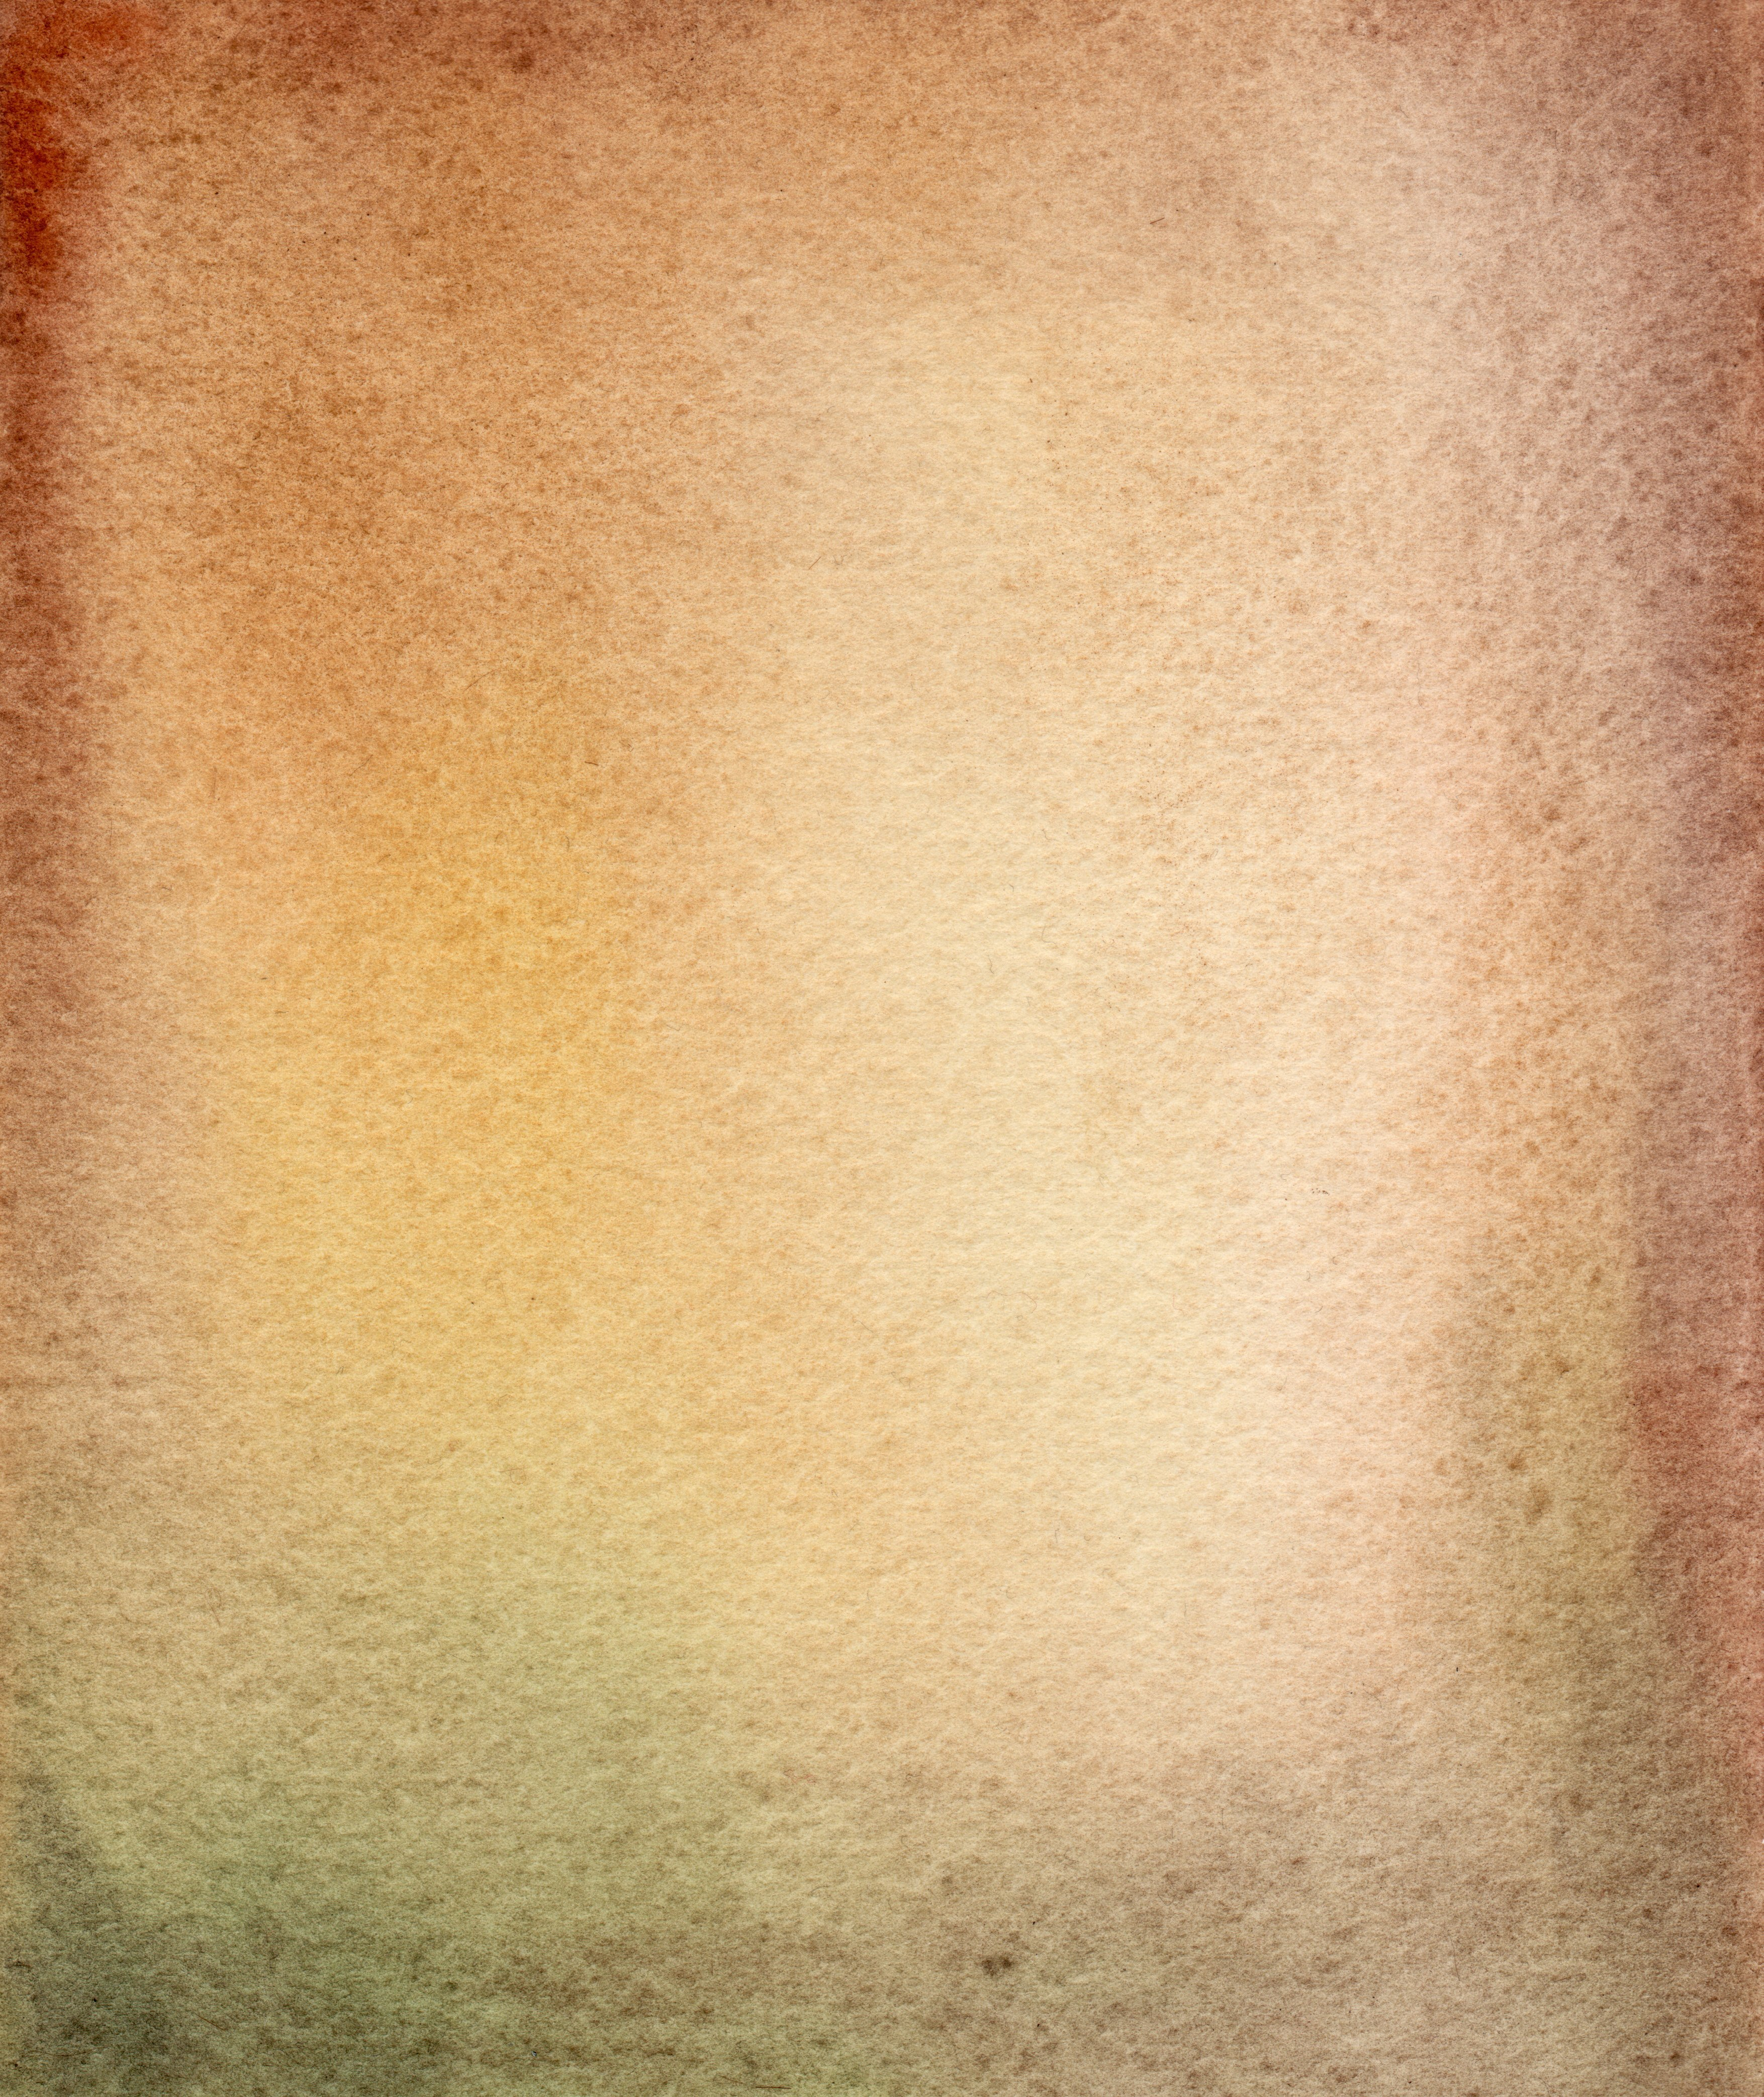 Painted Texture 38 By Lunanyxstock Painted Texture 38 By Lunanyxstock